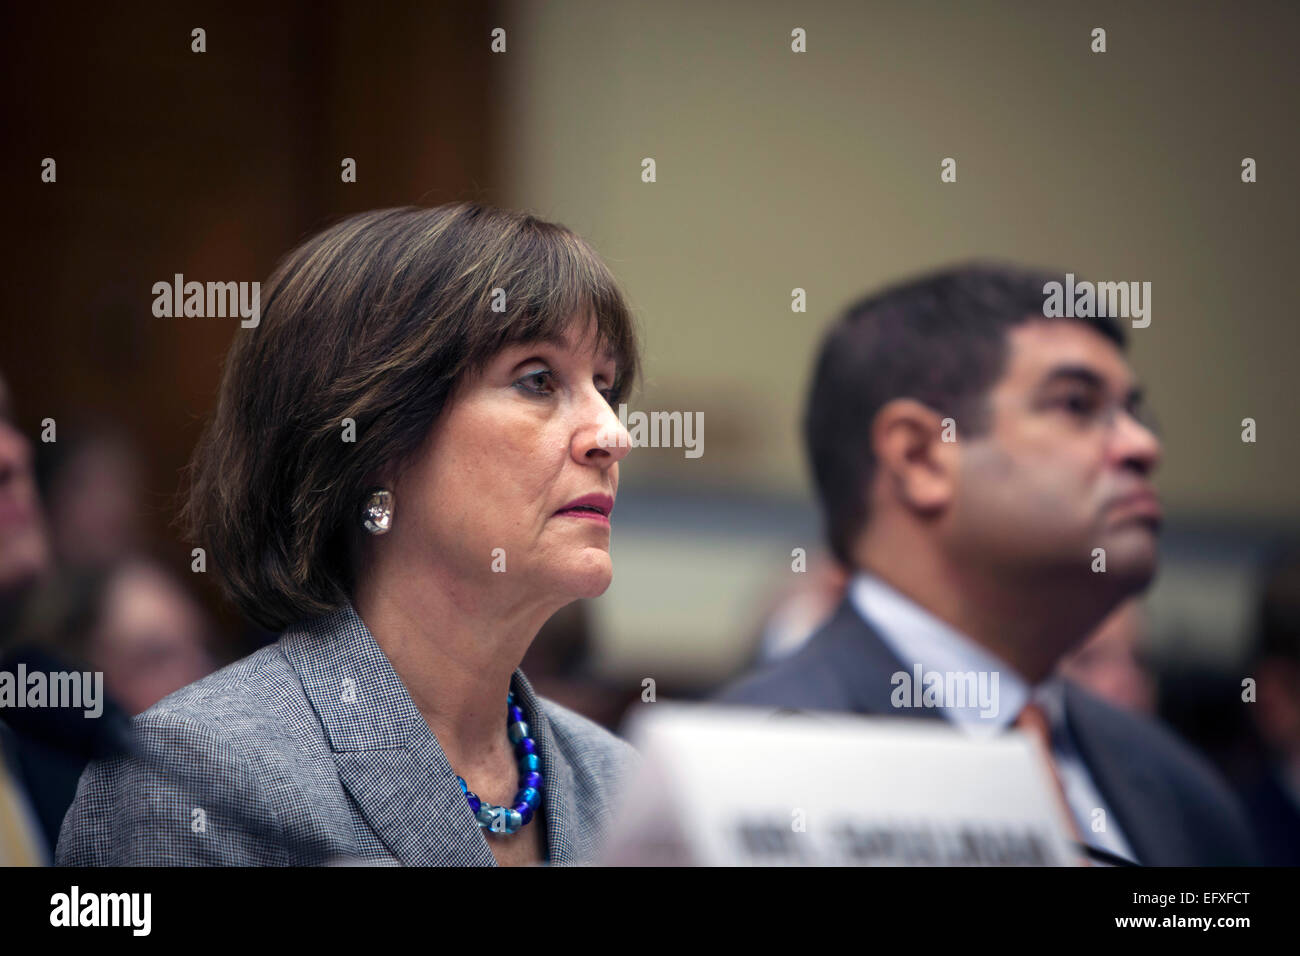 Director of the IRS Exempt Organizations division Lois Lerner testifies at the House Oversight and Government Reform - Stock Image